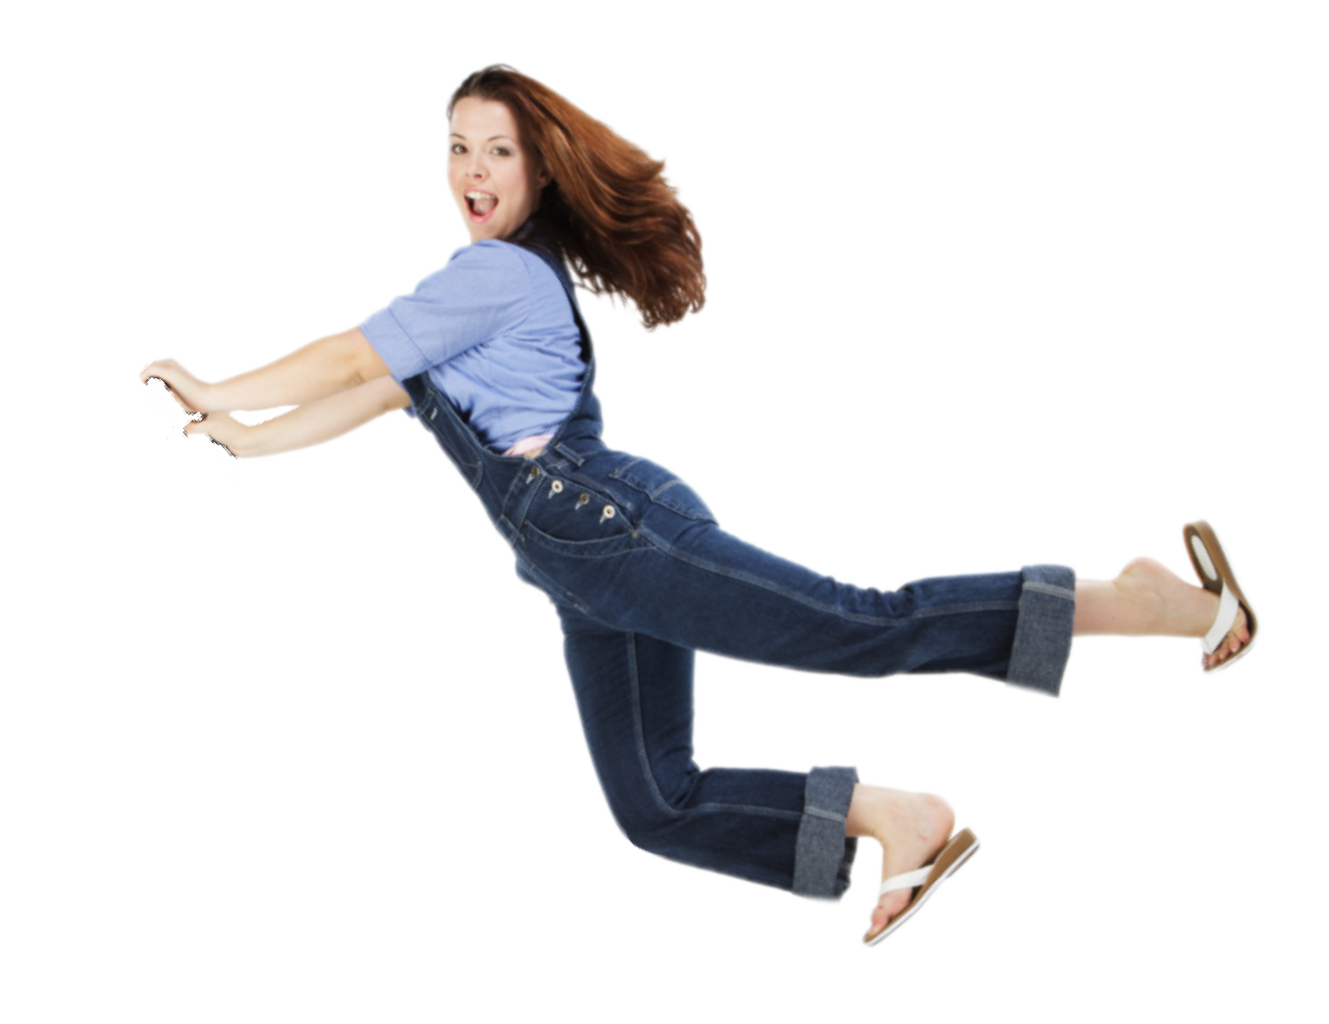 Woman falling png. Ftestickers people pushing